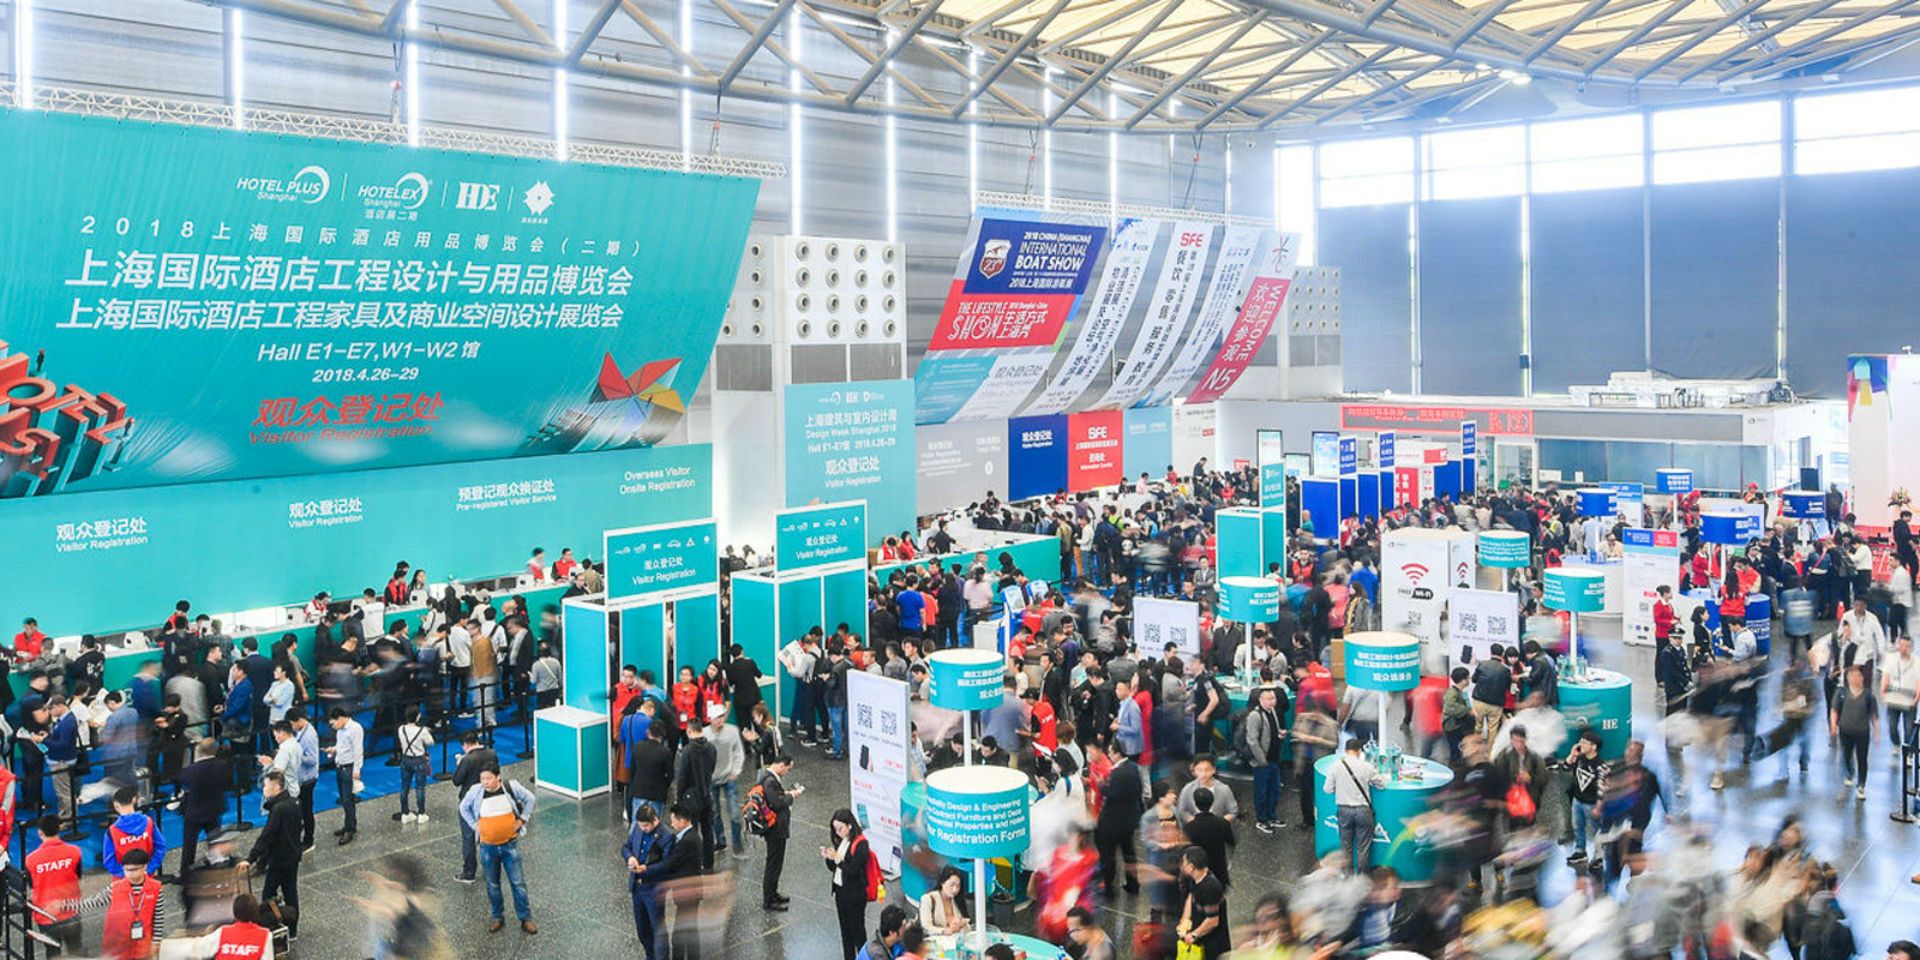 Hotel Plus – HDE 2019 is set to be held on 26th, 27th and 28th April at Shanghai, China